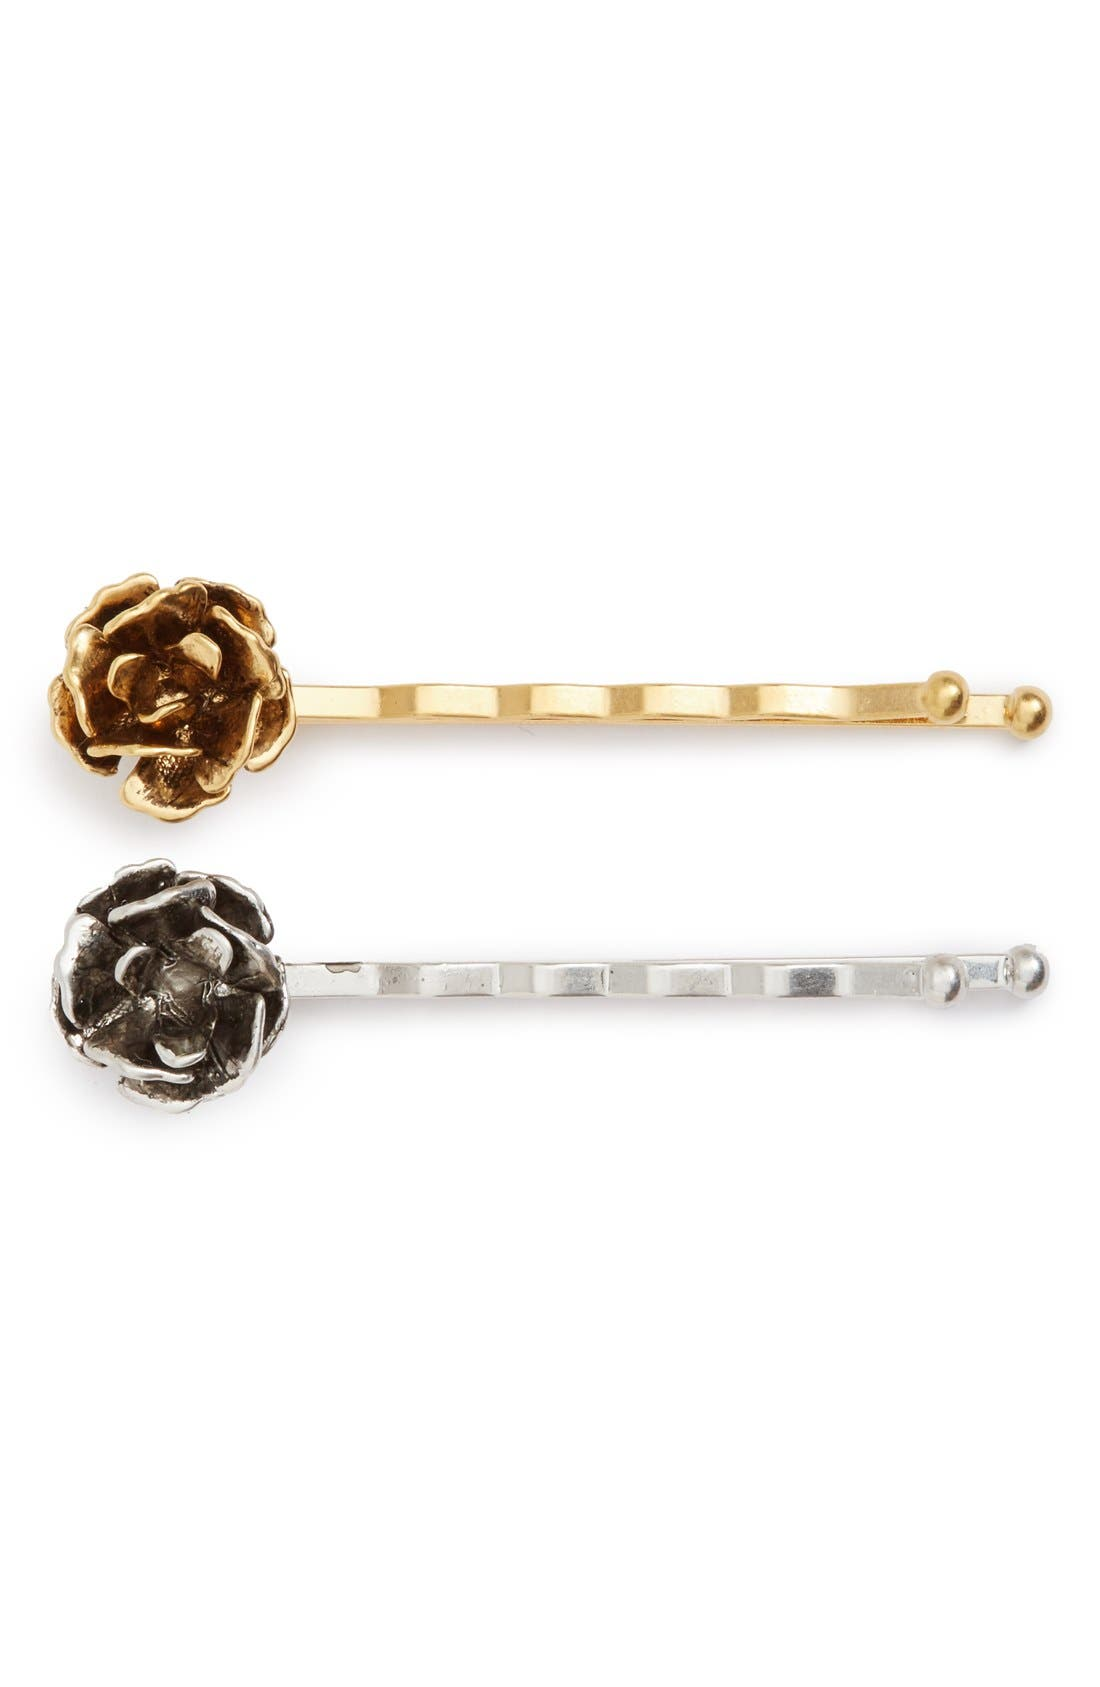 Main Image - MARC JACOBS 'Flower' Bobby Pins (Set of 2)